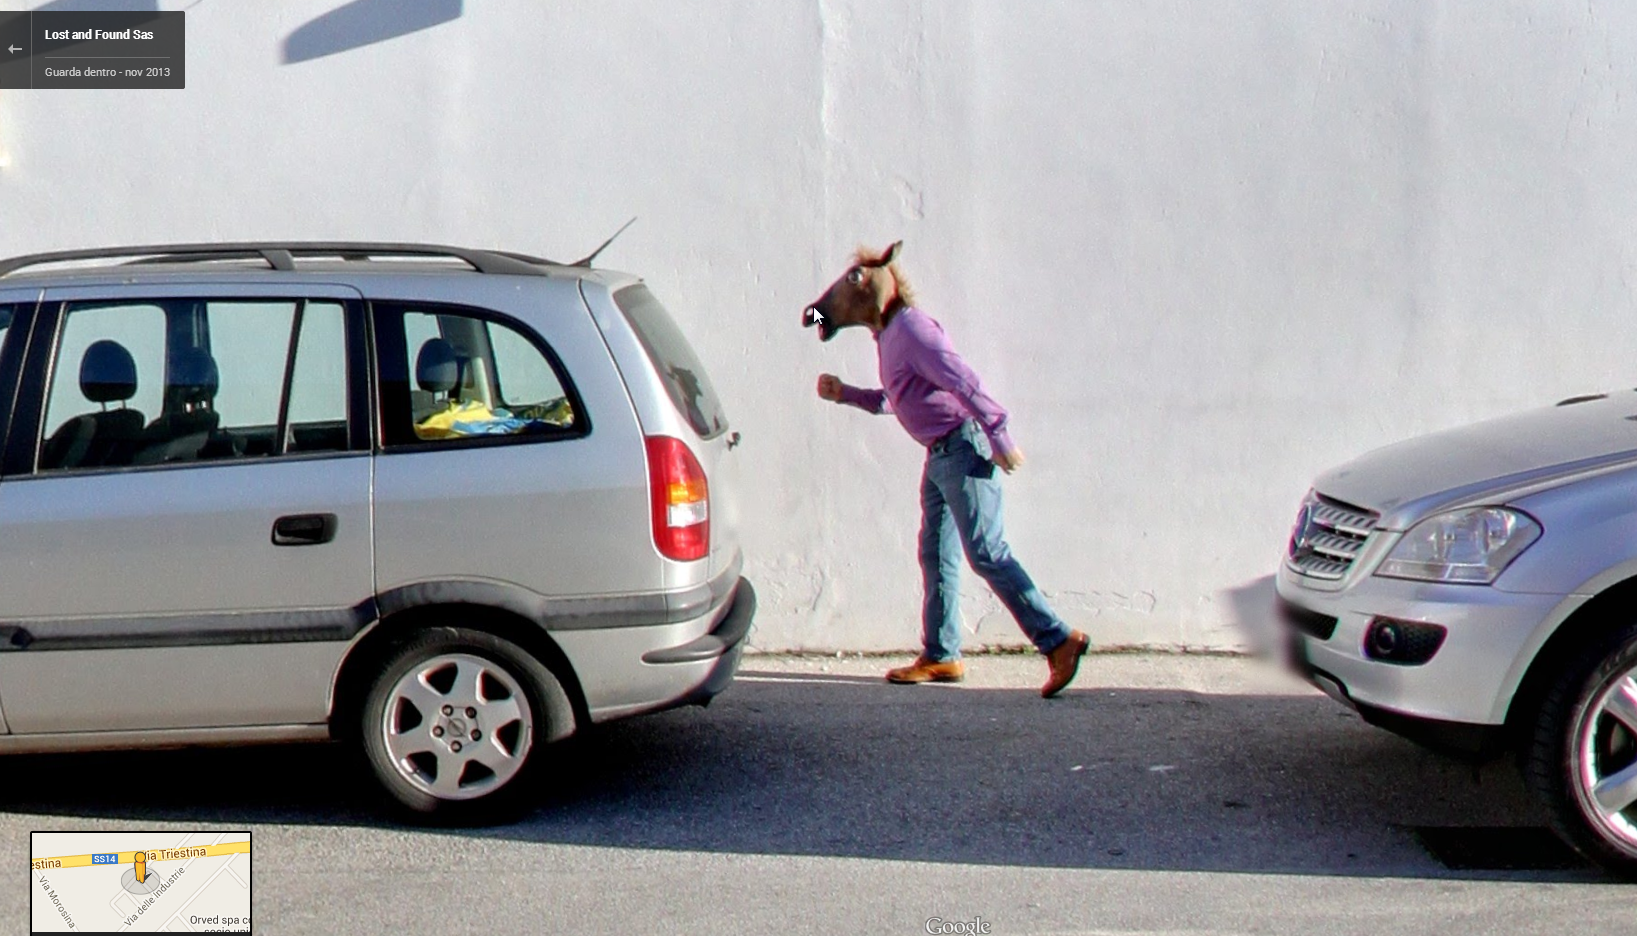 Yet another Horse Boy appearance on Google Street View